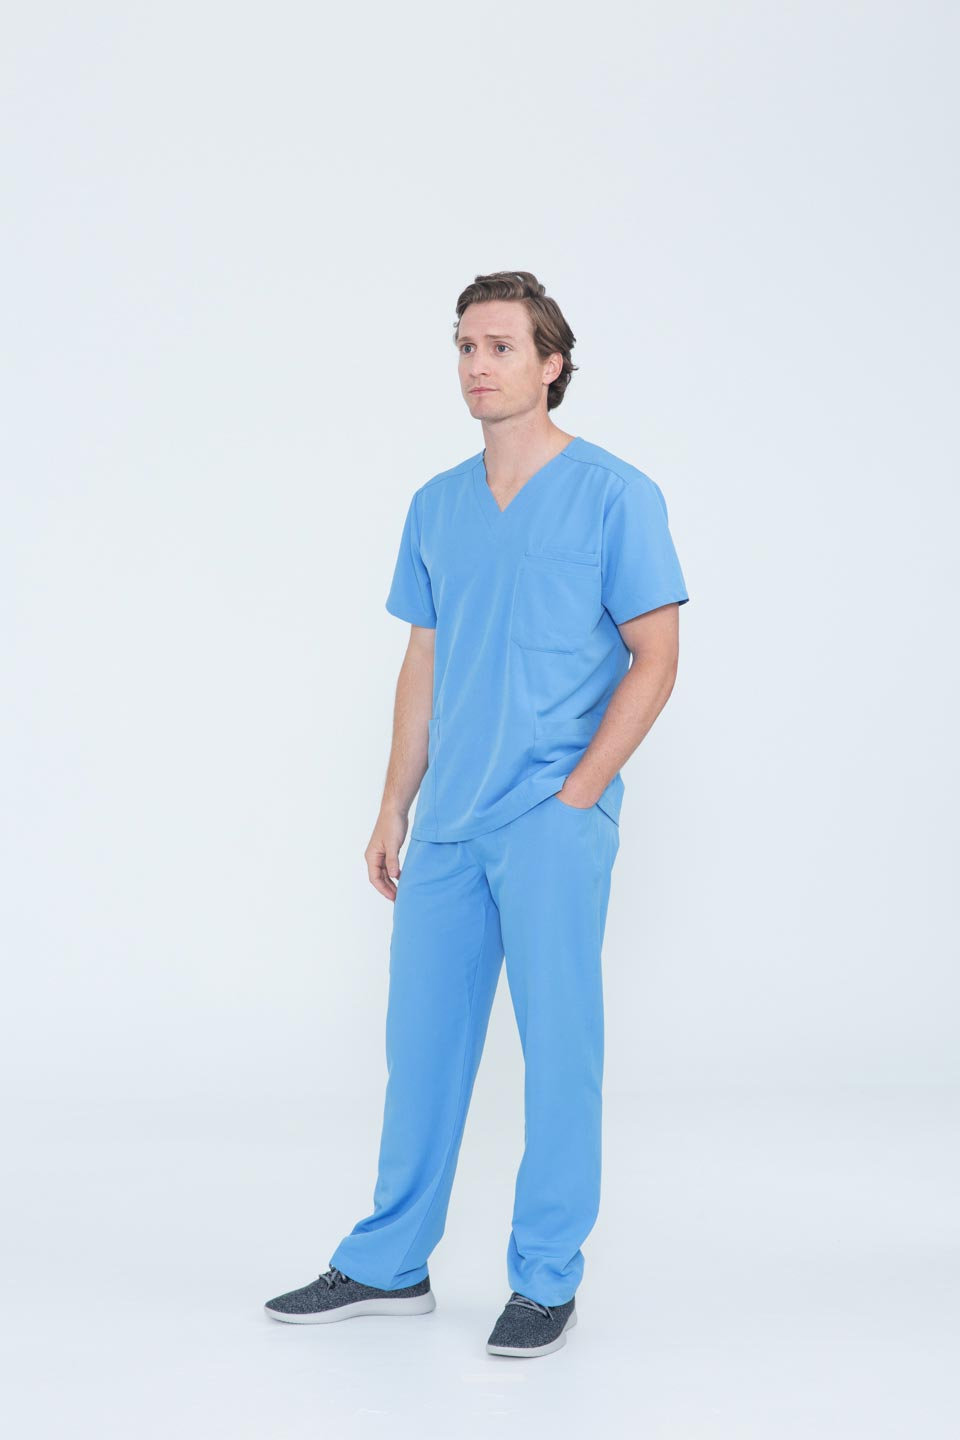 Kalea - Mens Gallant Scrub Pants - Light Blue